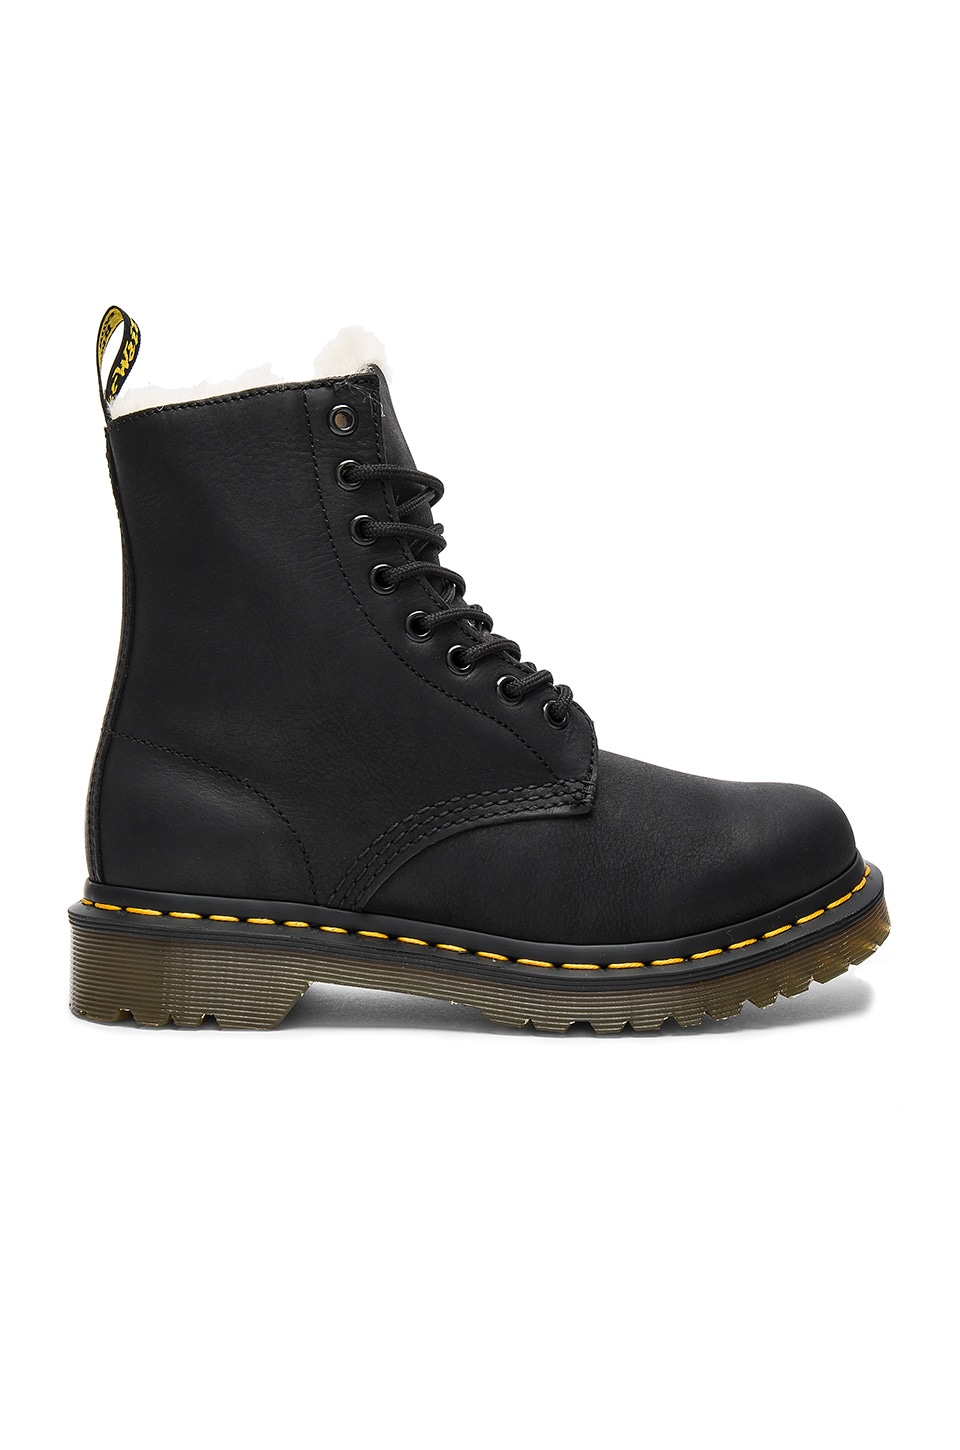 Dr. Martens Serena 8 Eye Boots in Black